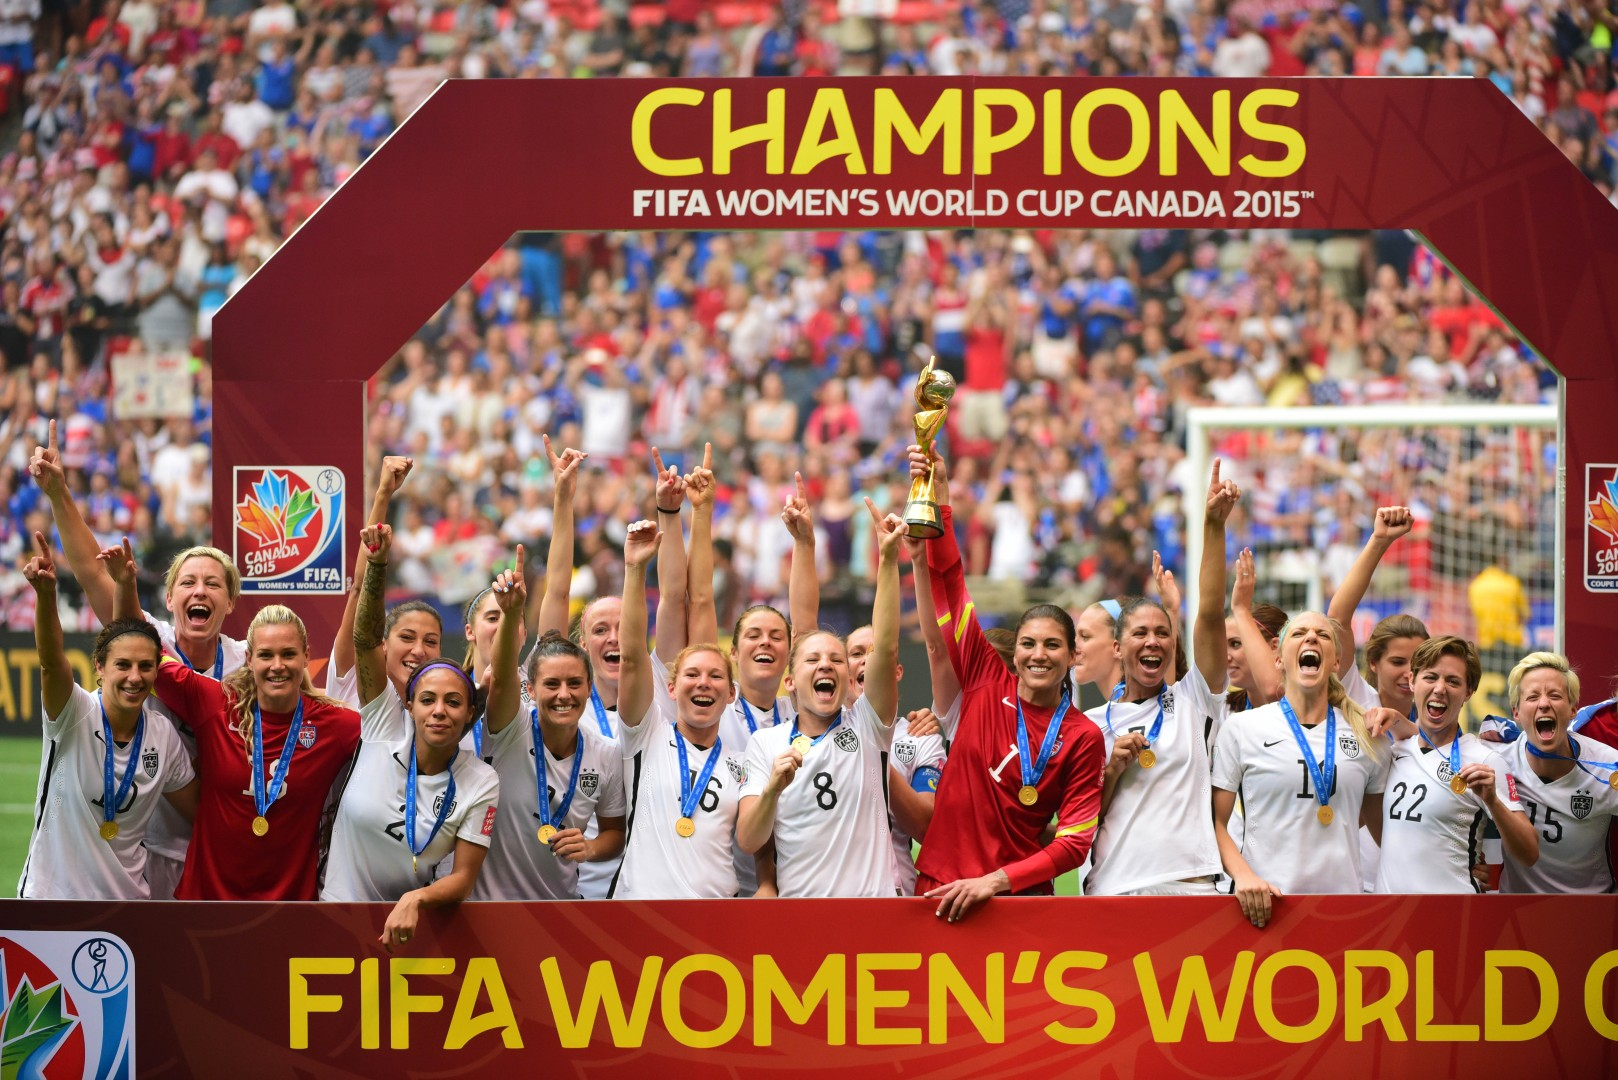 e18f4d5eb10 Carli Lloyd scores hat-trick as United States crush Japan 5-2 to win  Women s World Cup